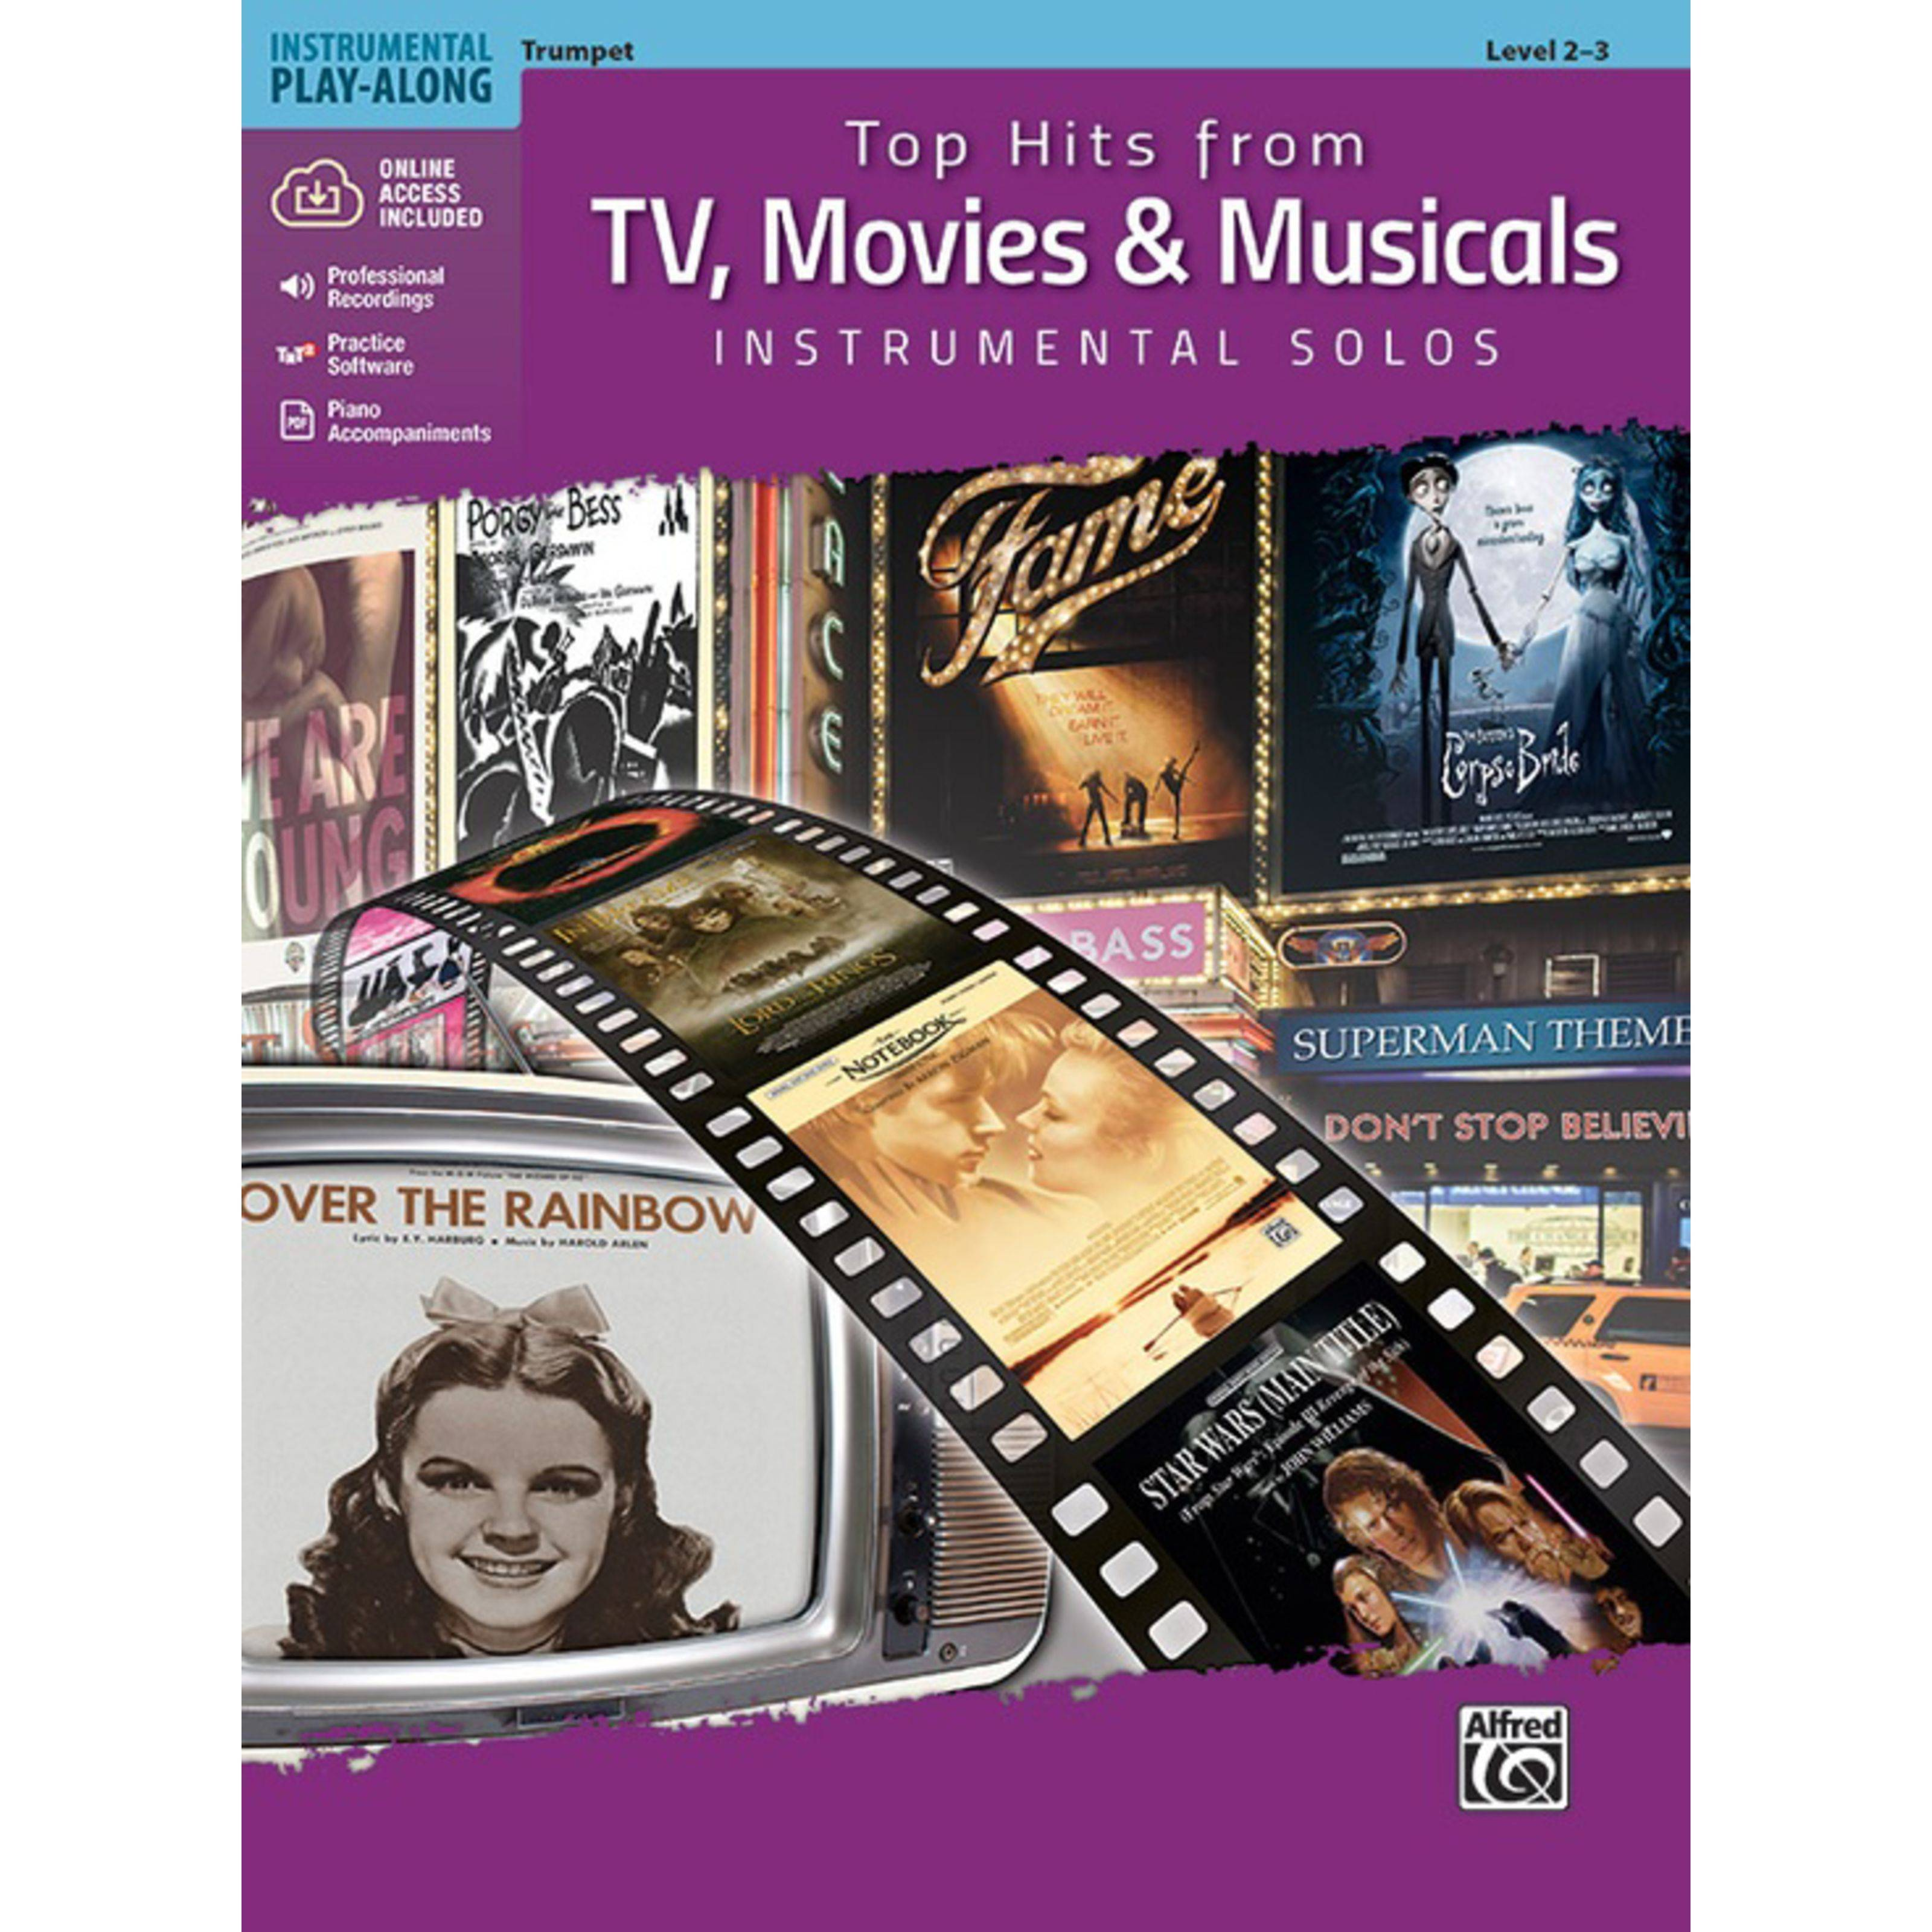 Alfred Music Top Hits from TV, Movies & Musicals – Trumpet